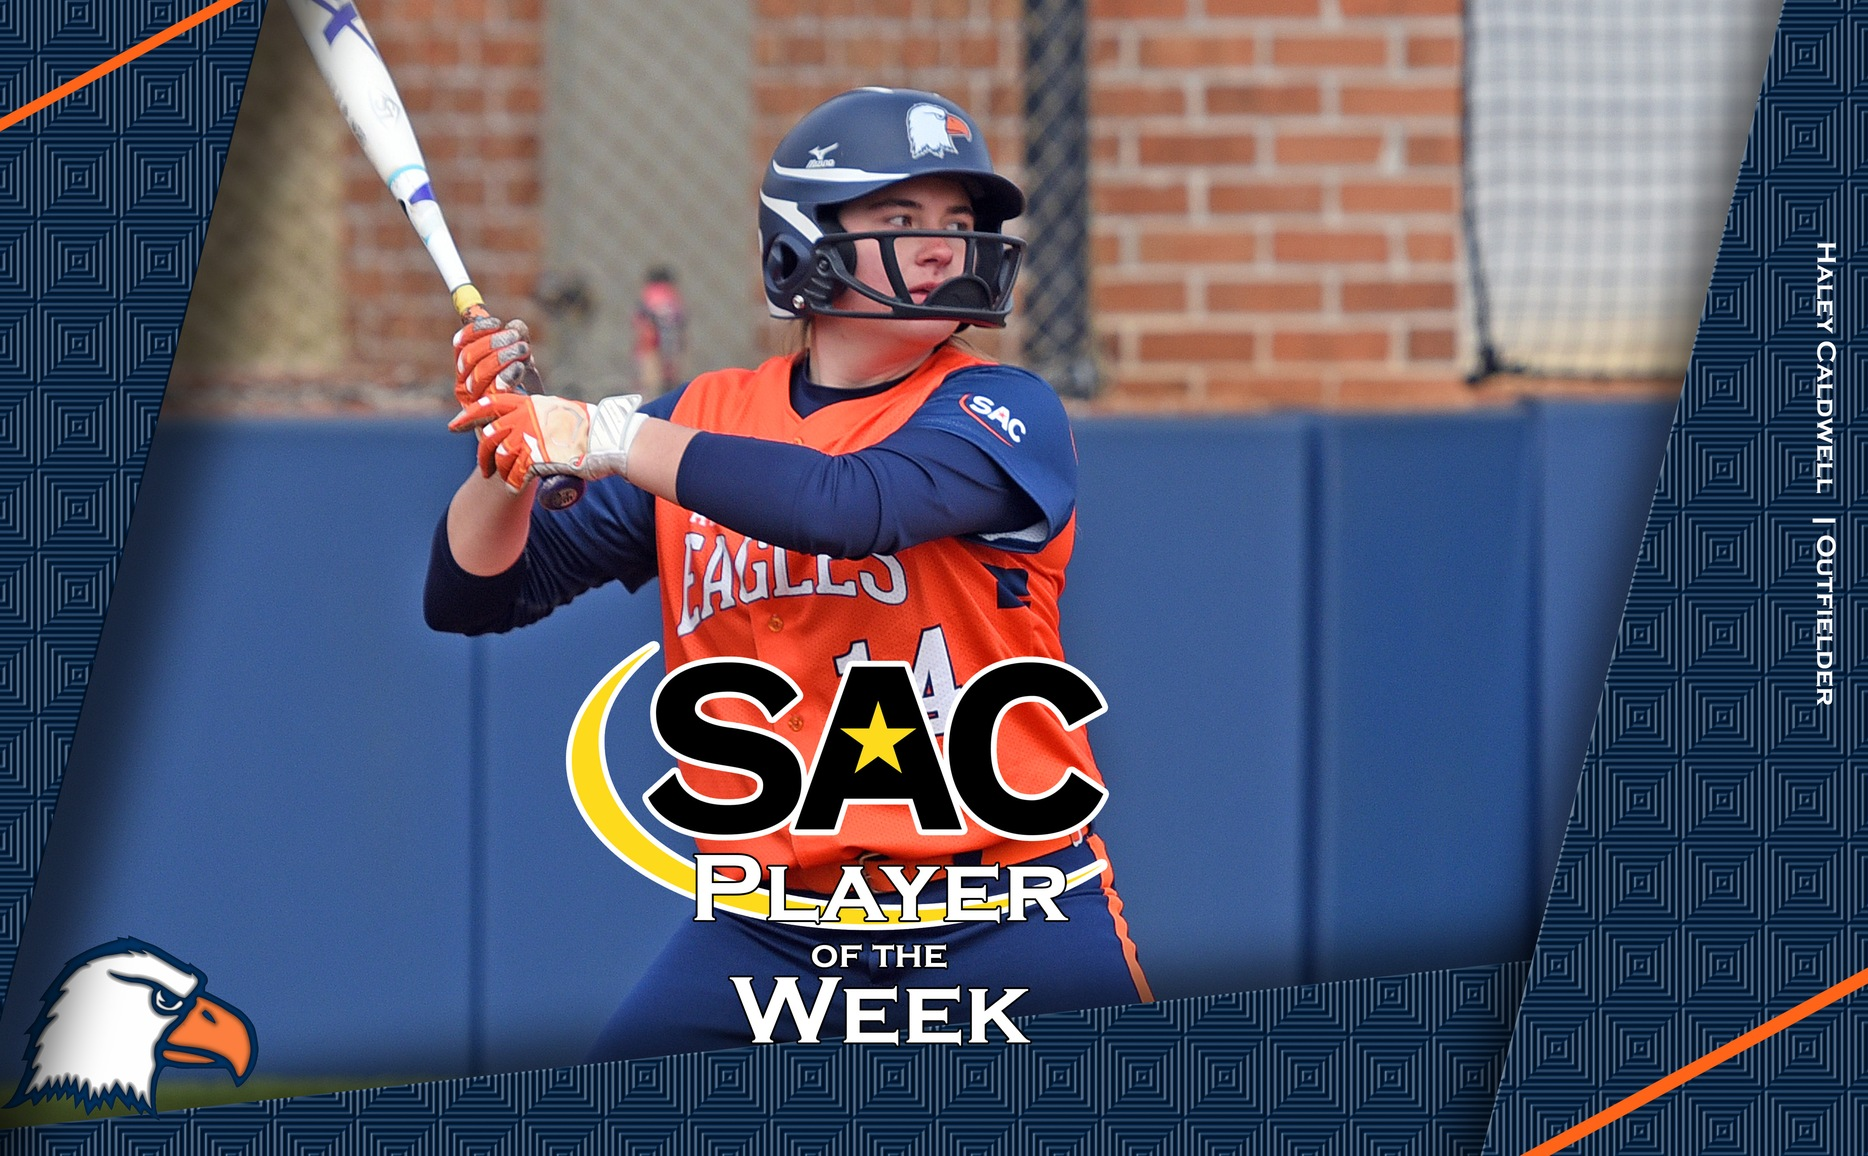 Caldwell nets AstroTurf SAC Player of the Week accolade